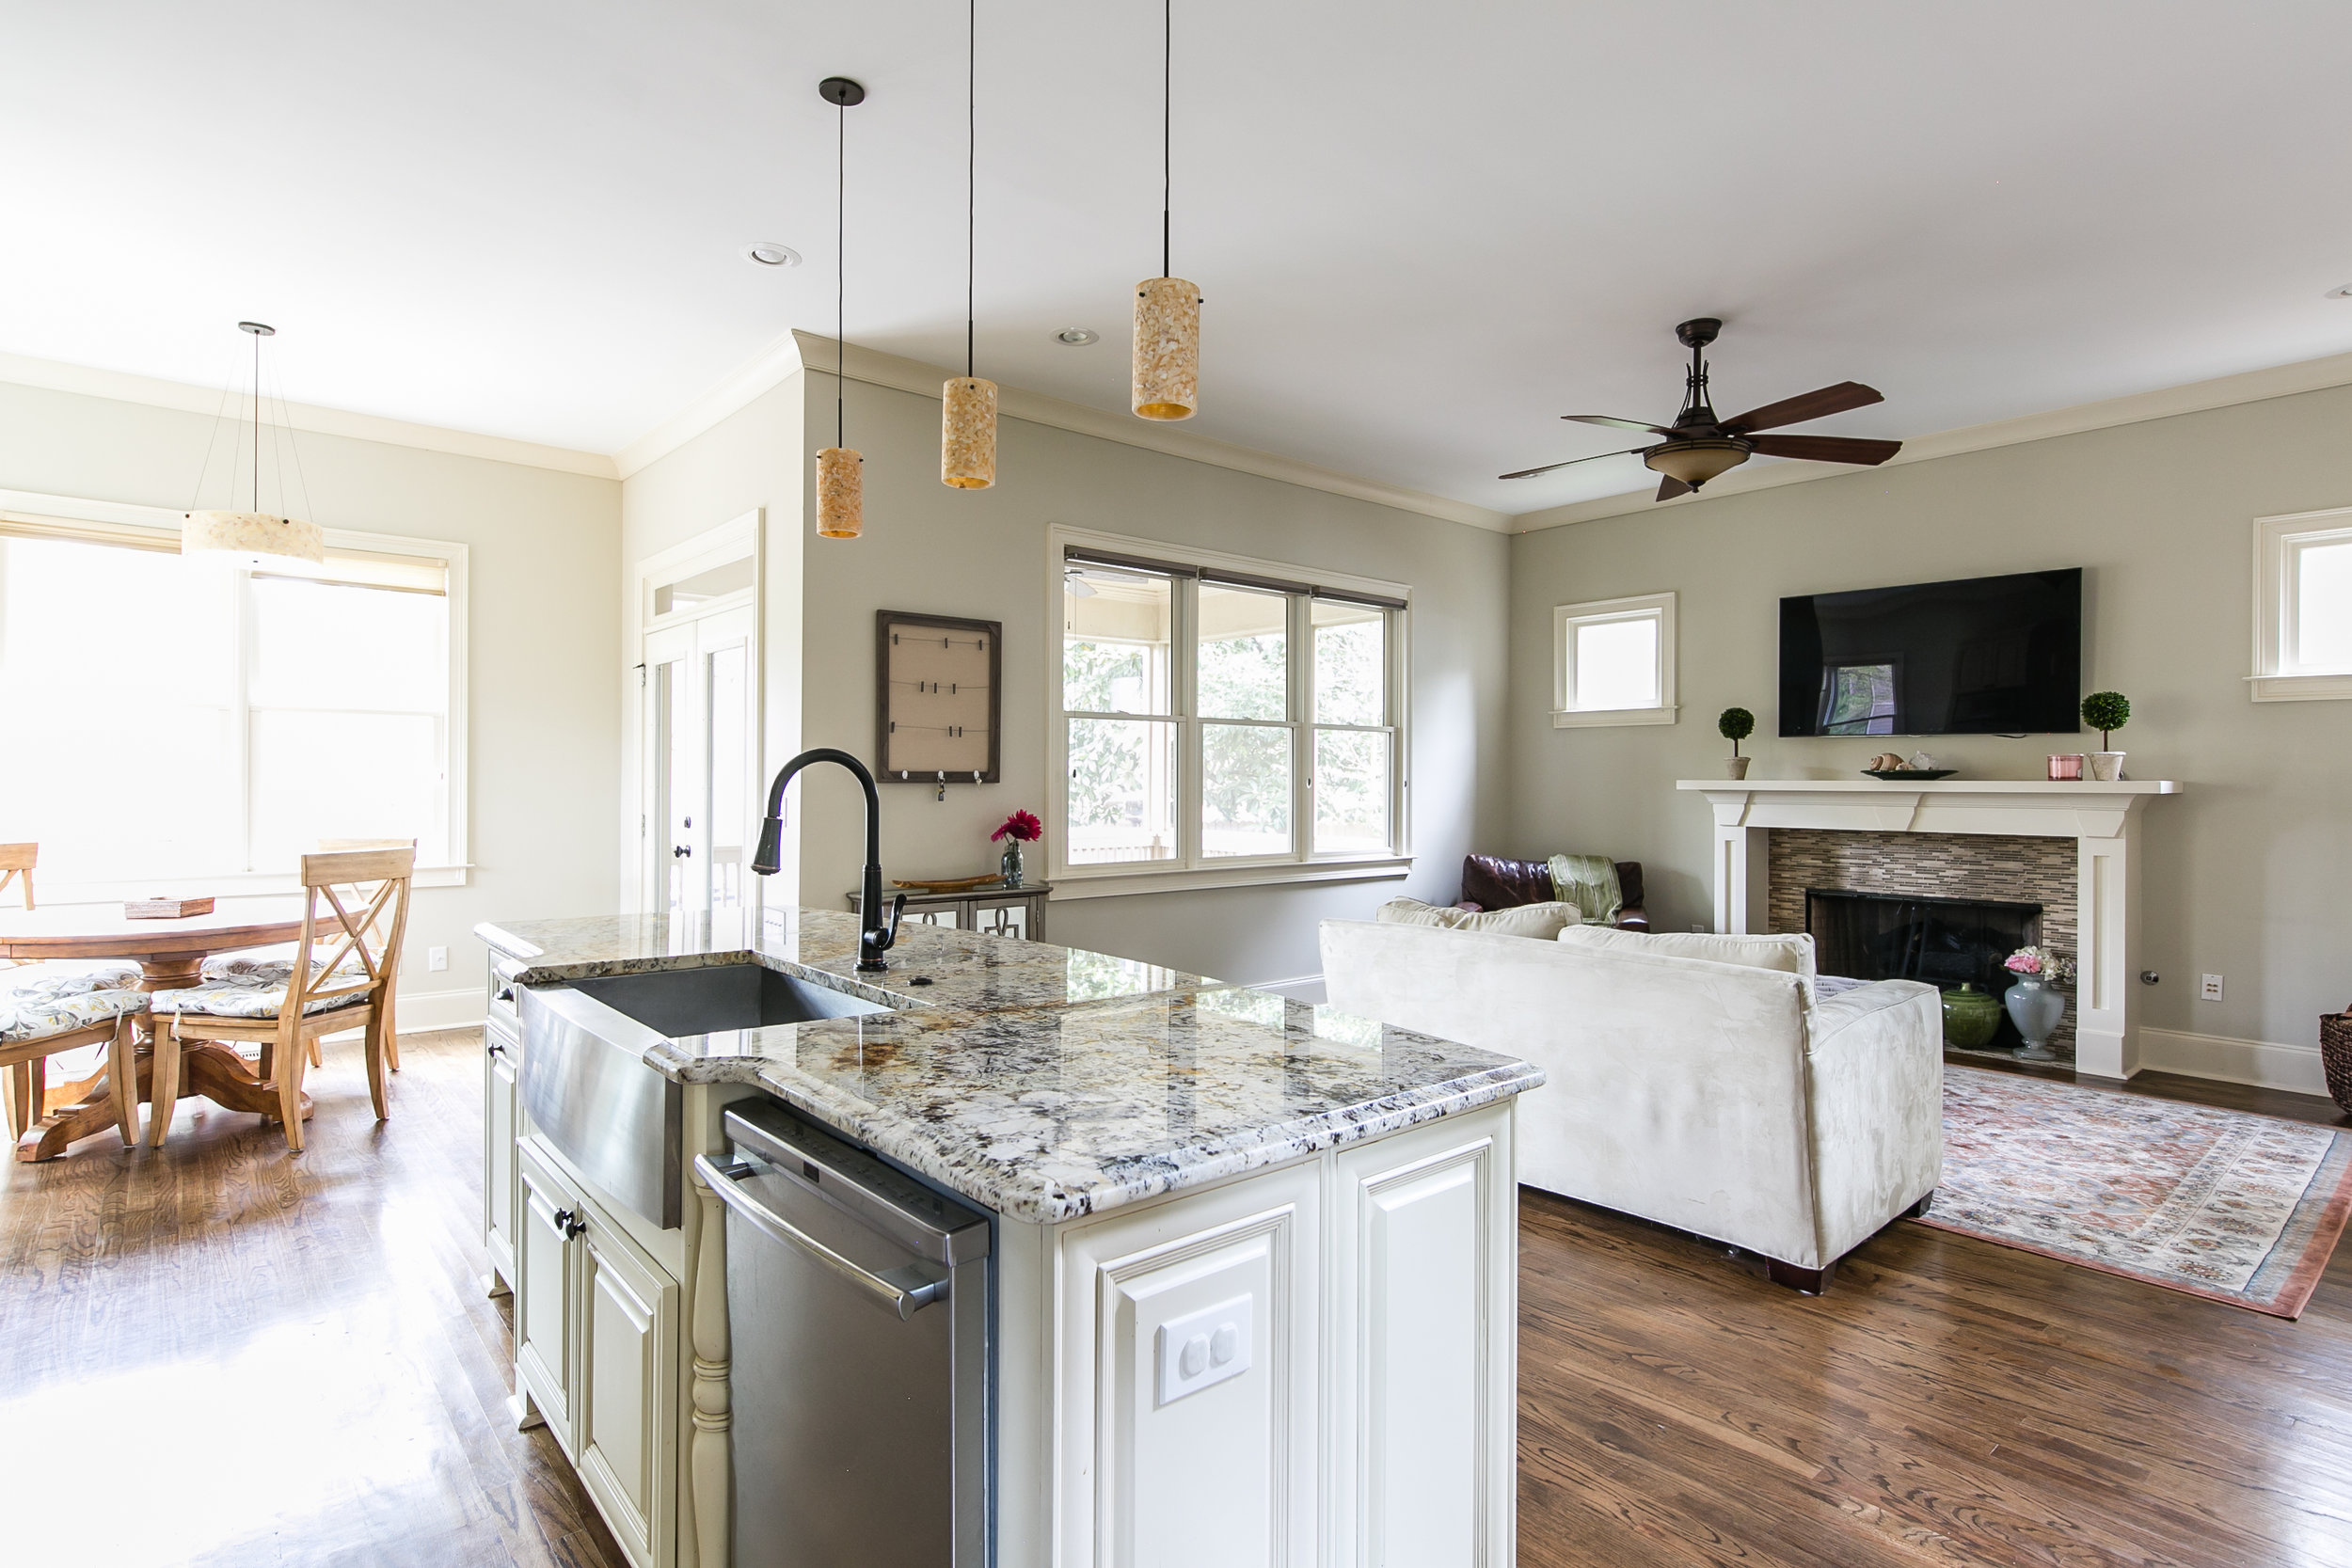 125 Mcclean-Kitchen 3.jpg